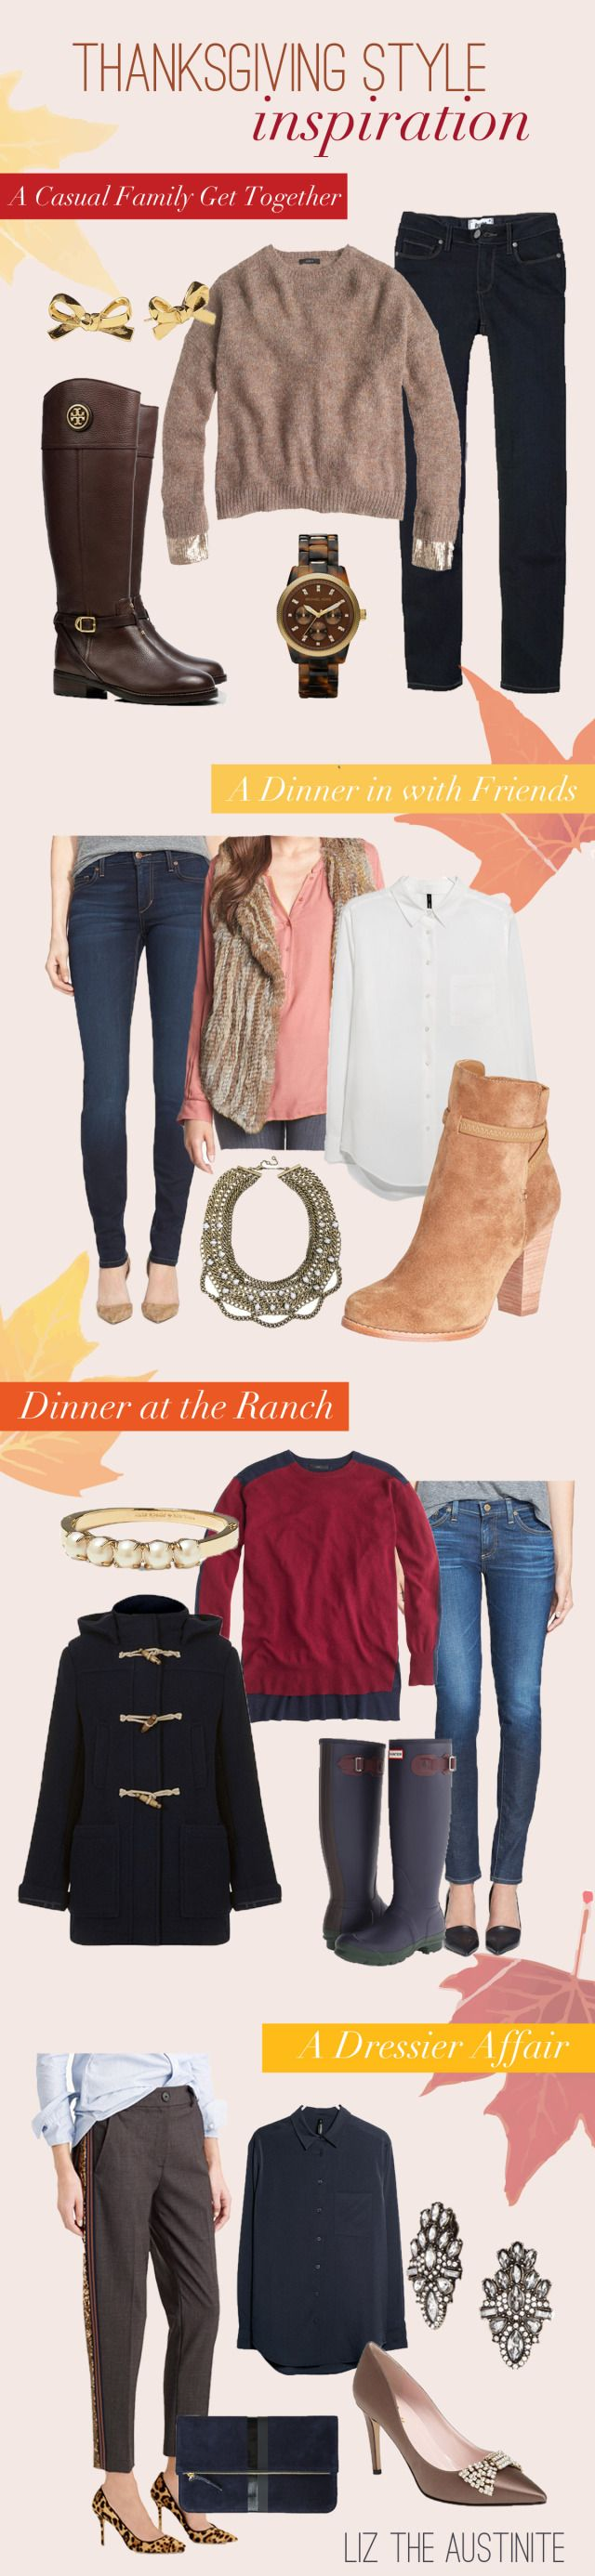 what to wear on thanksgiving #fashion